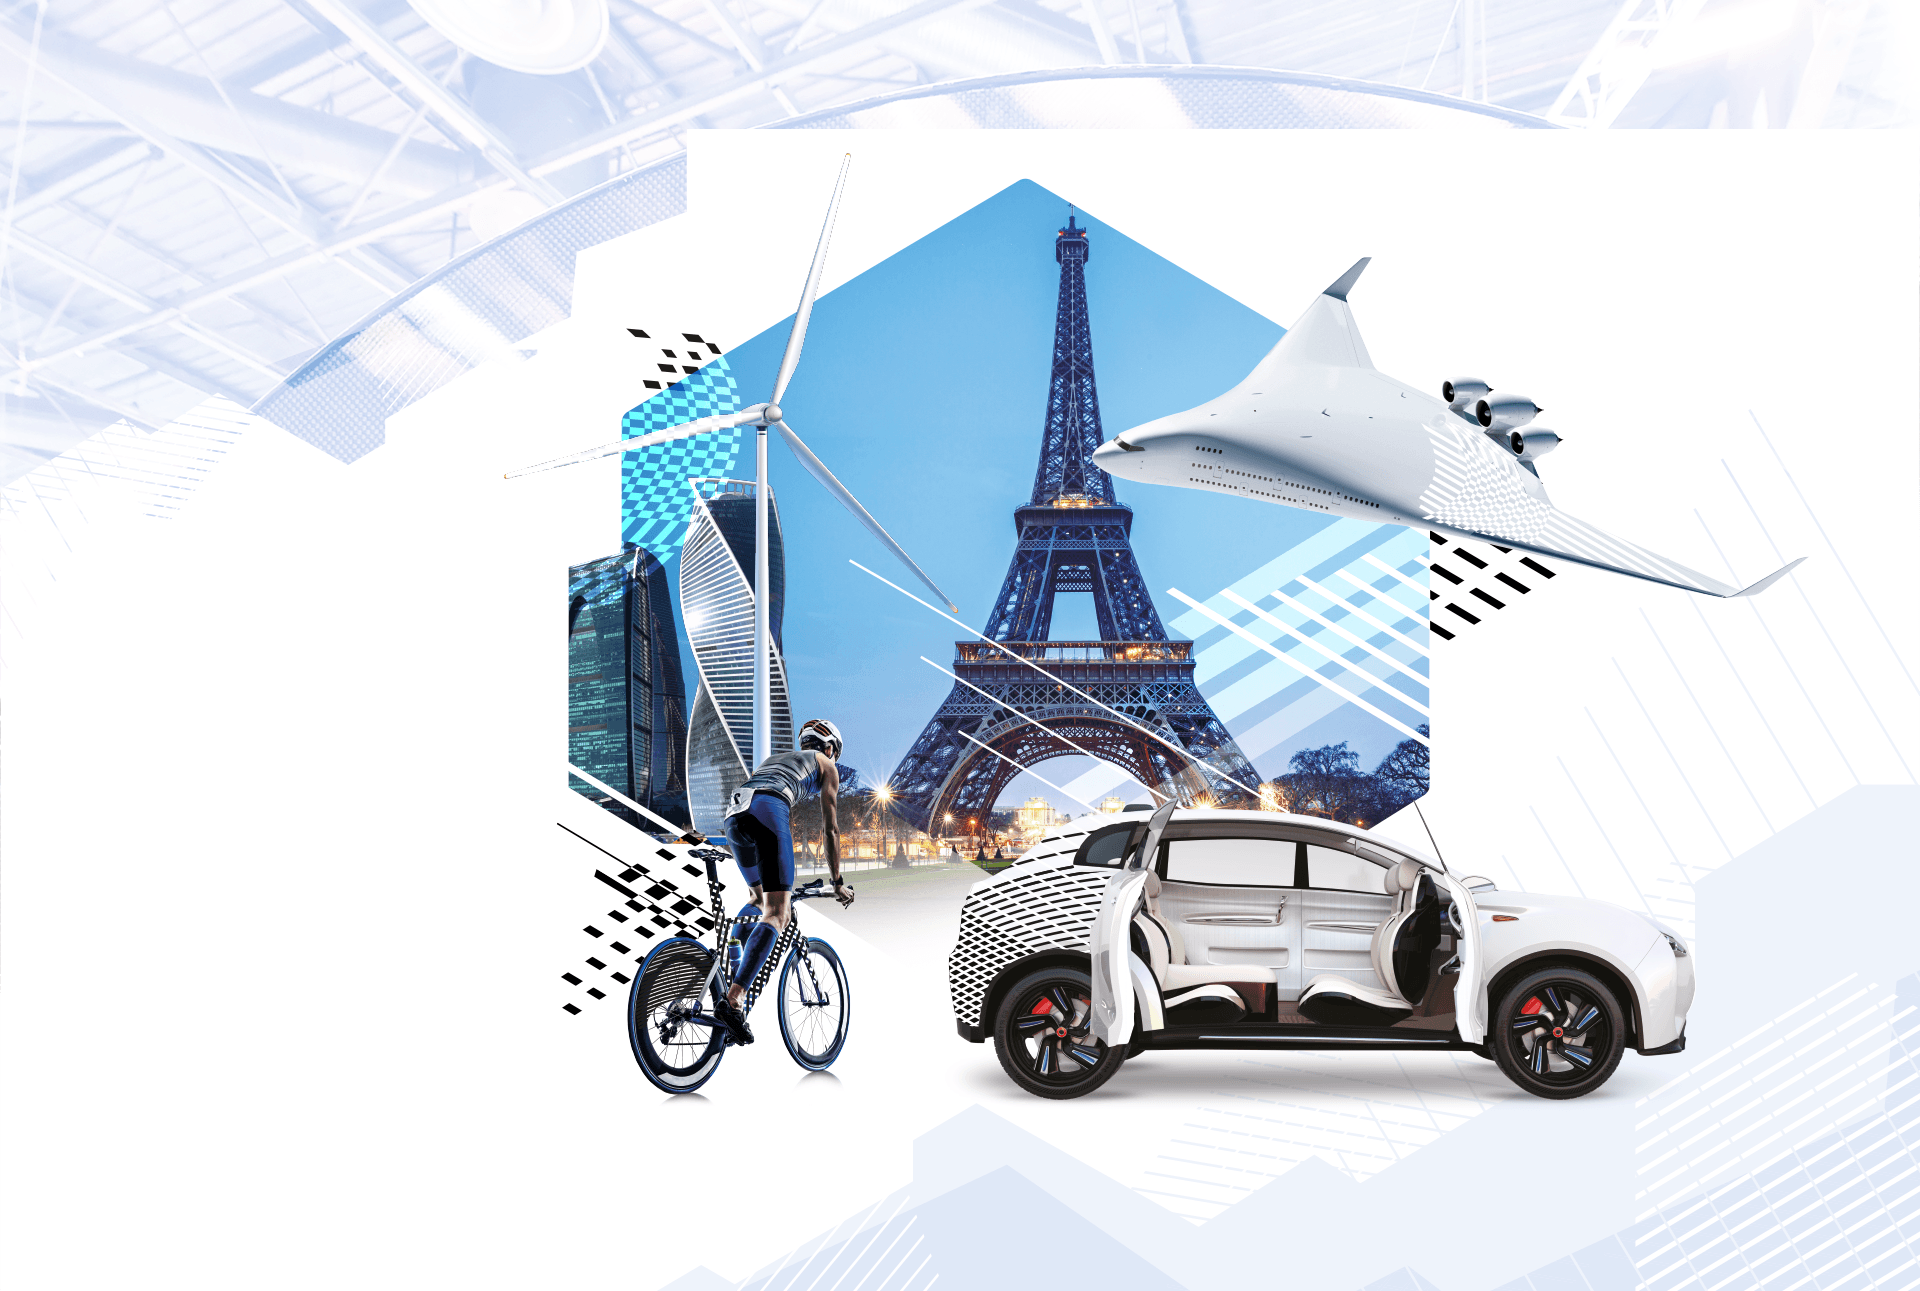 JEC Group has postponed the next edition of JEC World to 1 – 3 June 2021 at Paris Nord Villepinte. (Source: JEC Group)